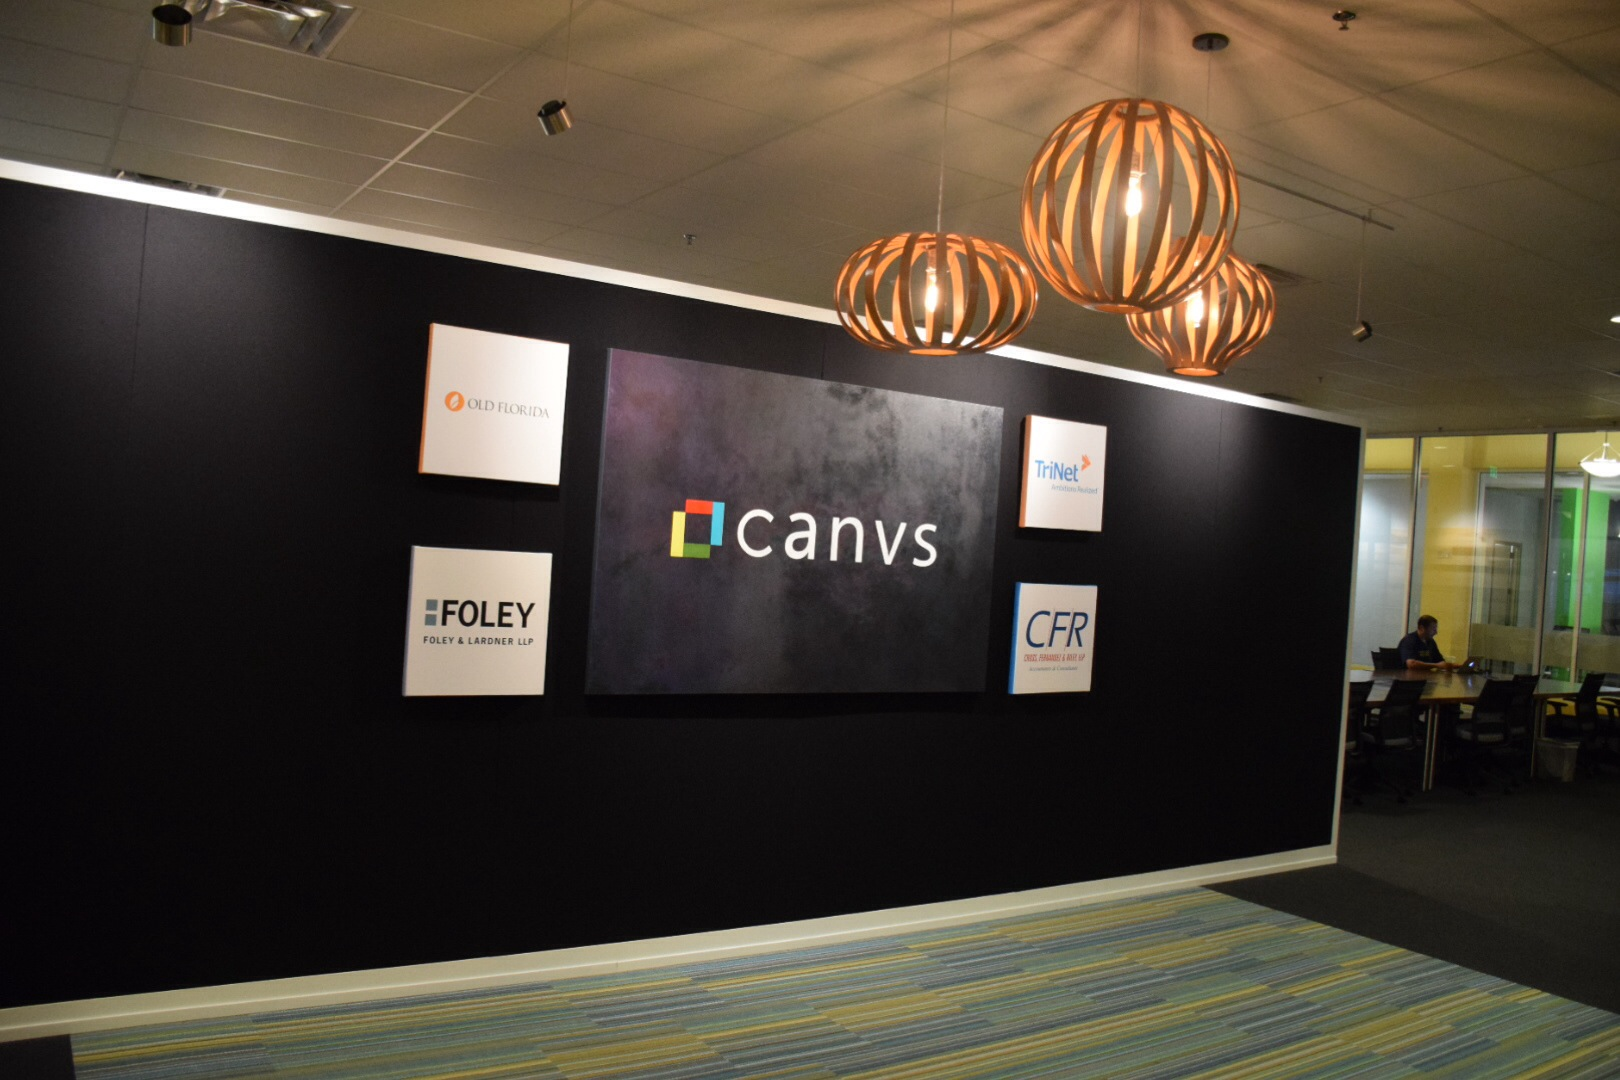 Orlando Coworking Space Canvs Sets New Prices